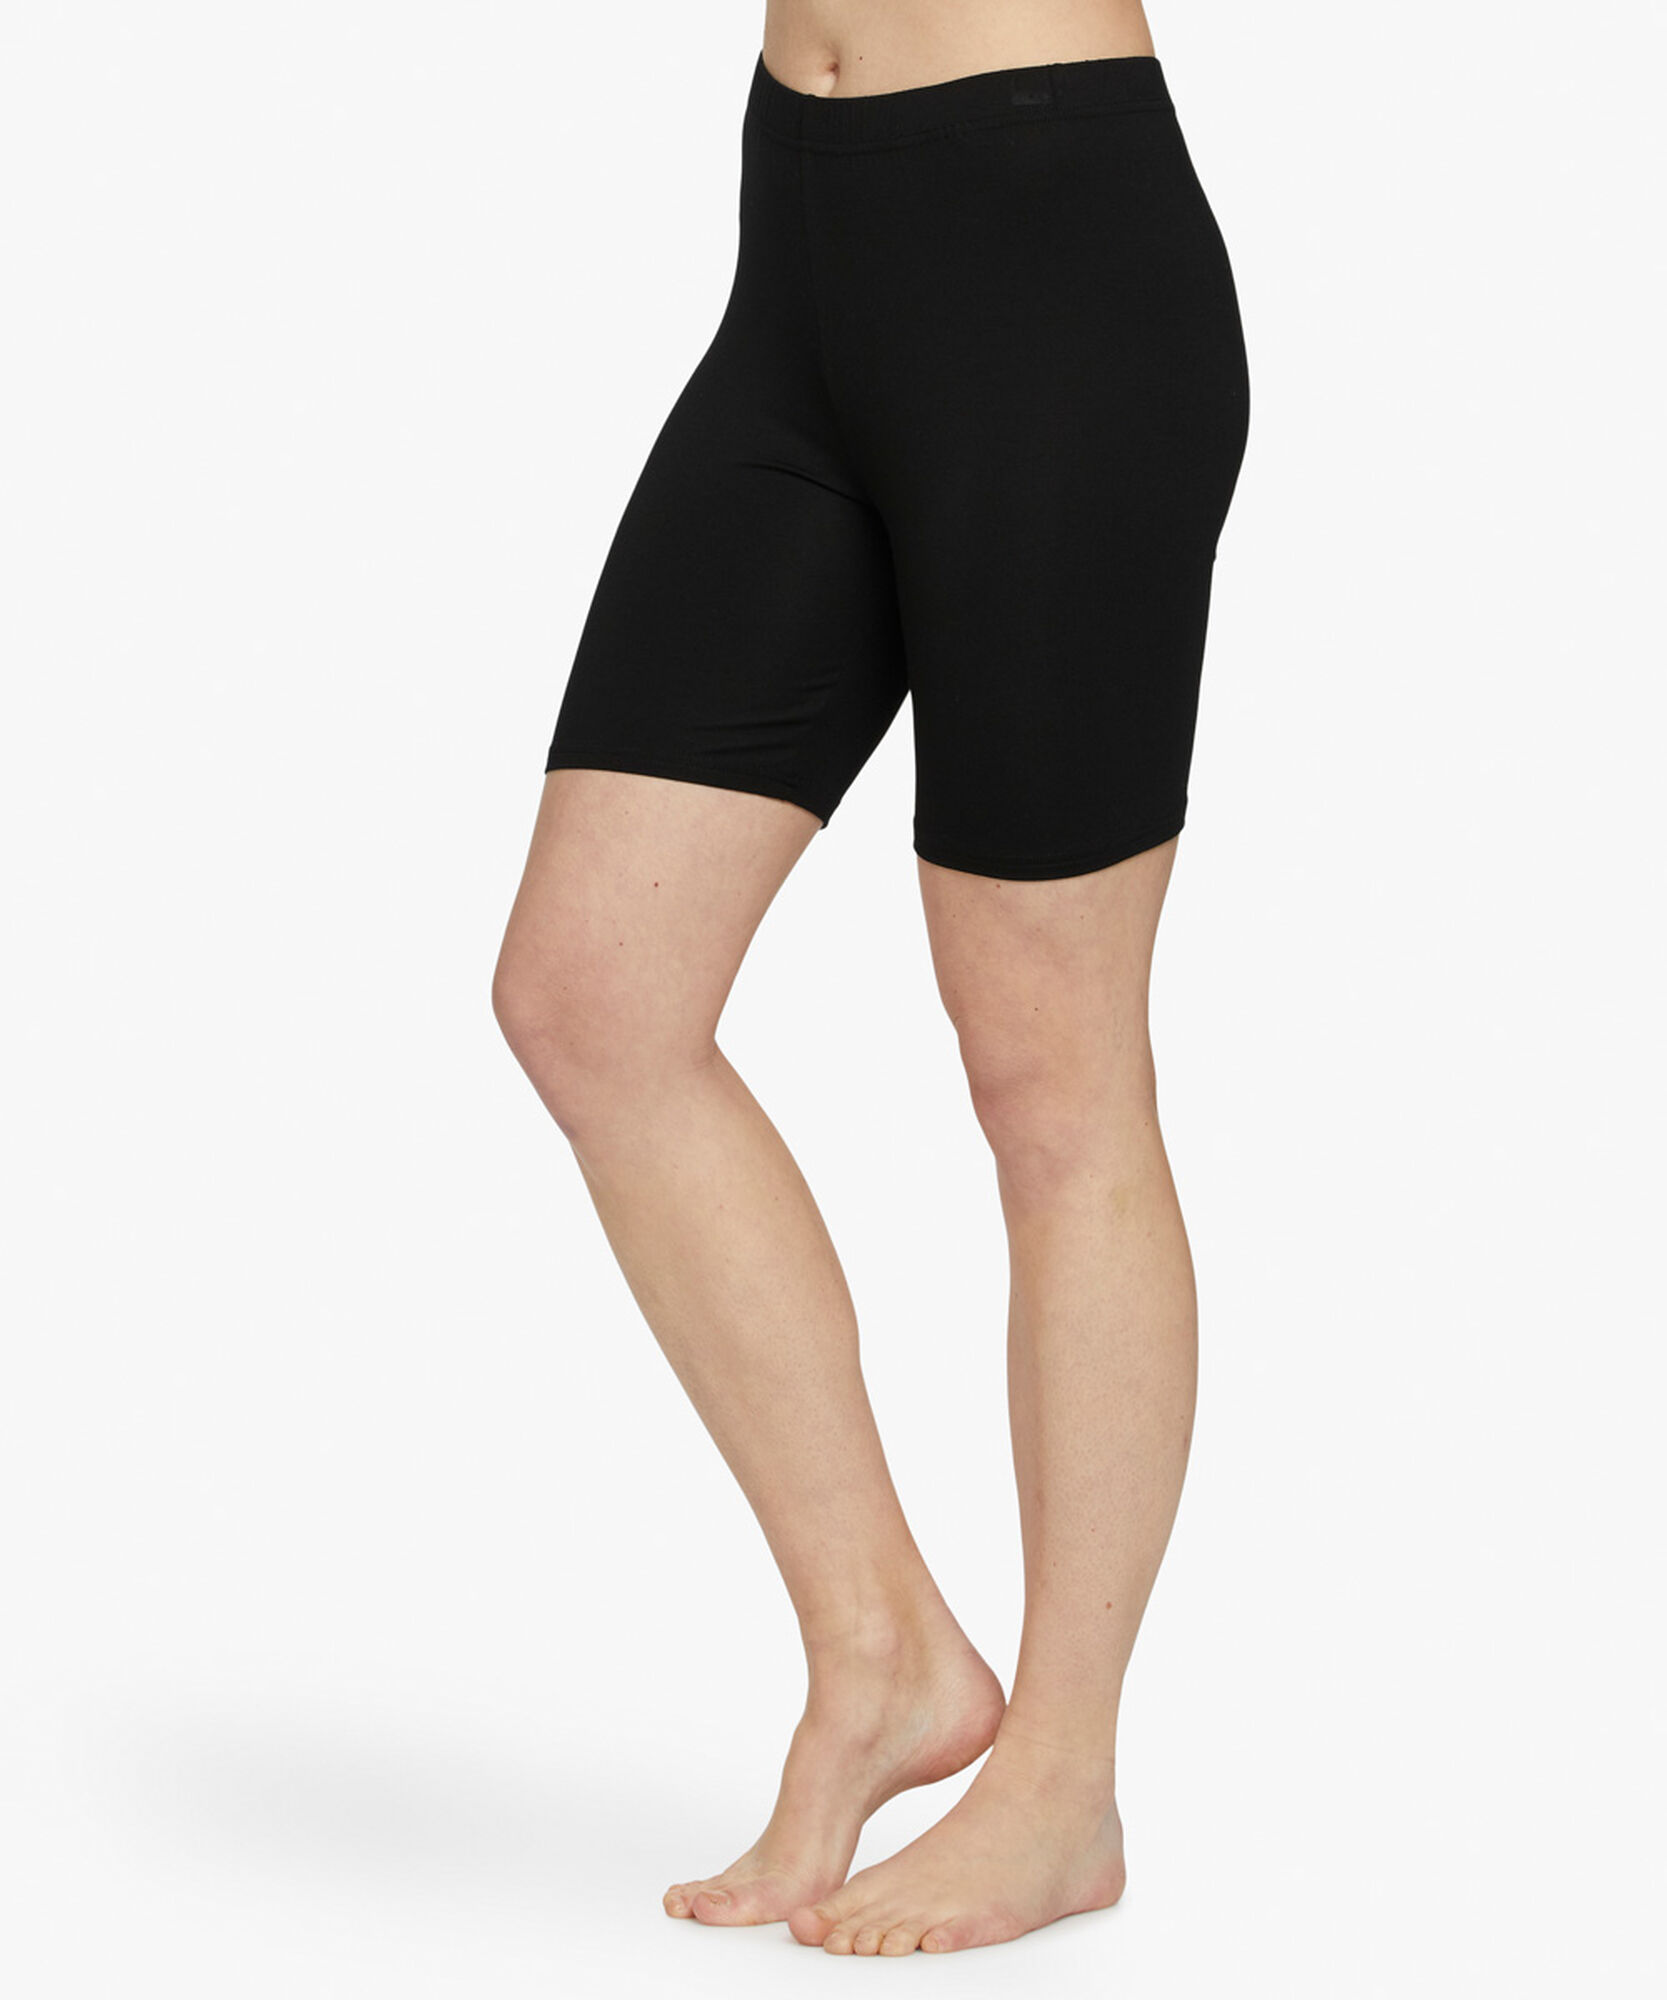 PANNY LEGGINGS, Black, hi-res